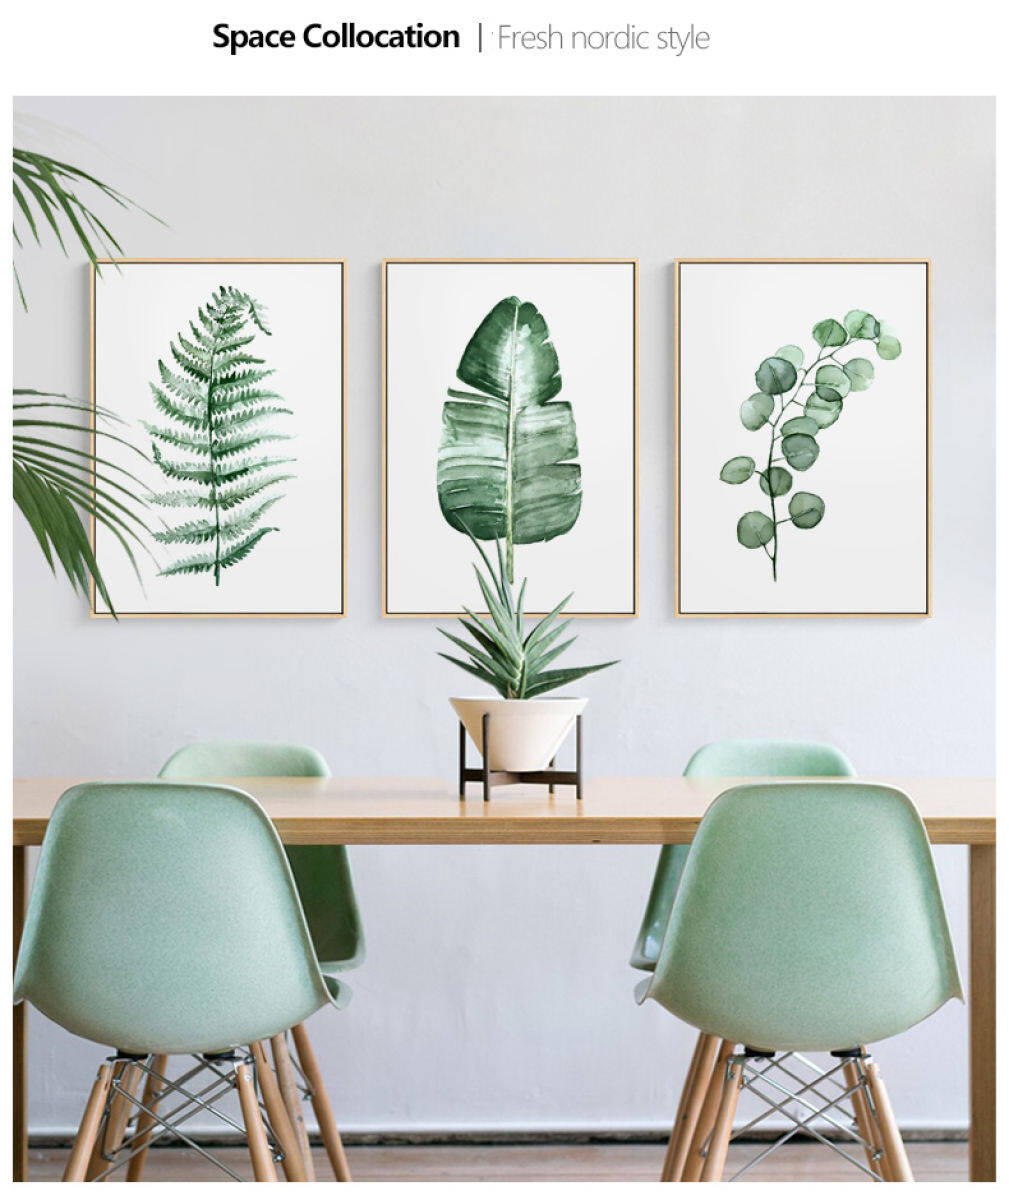 Meet A Nordic Pastoral Small Fresh Living Room Decorative Wall Painting Modern Minimalist Plant Green Leaf Home Bedroom Painting Lazada